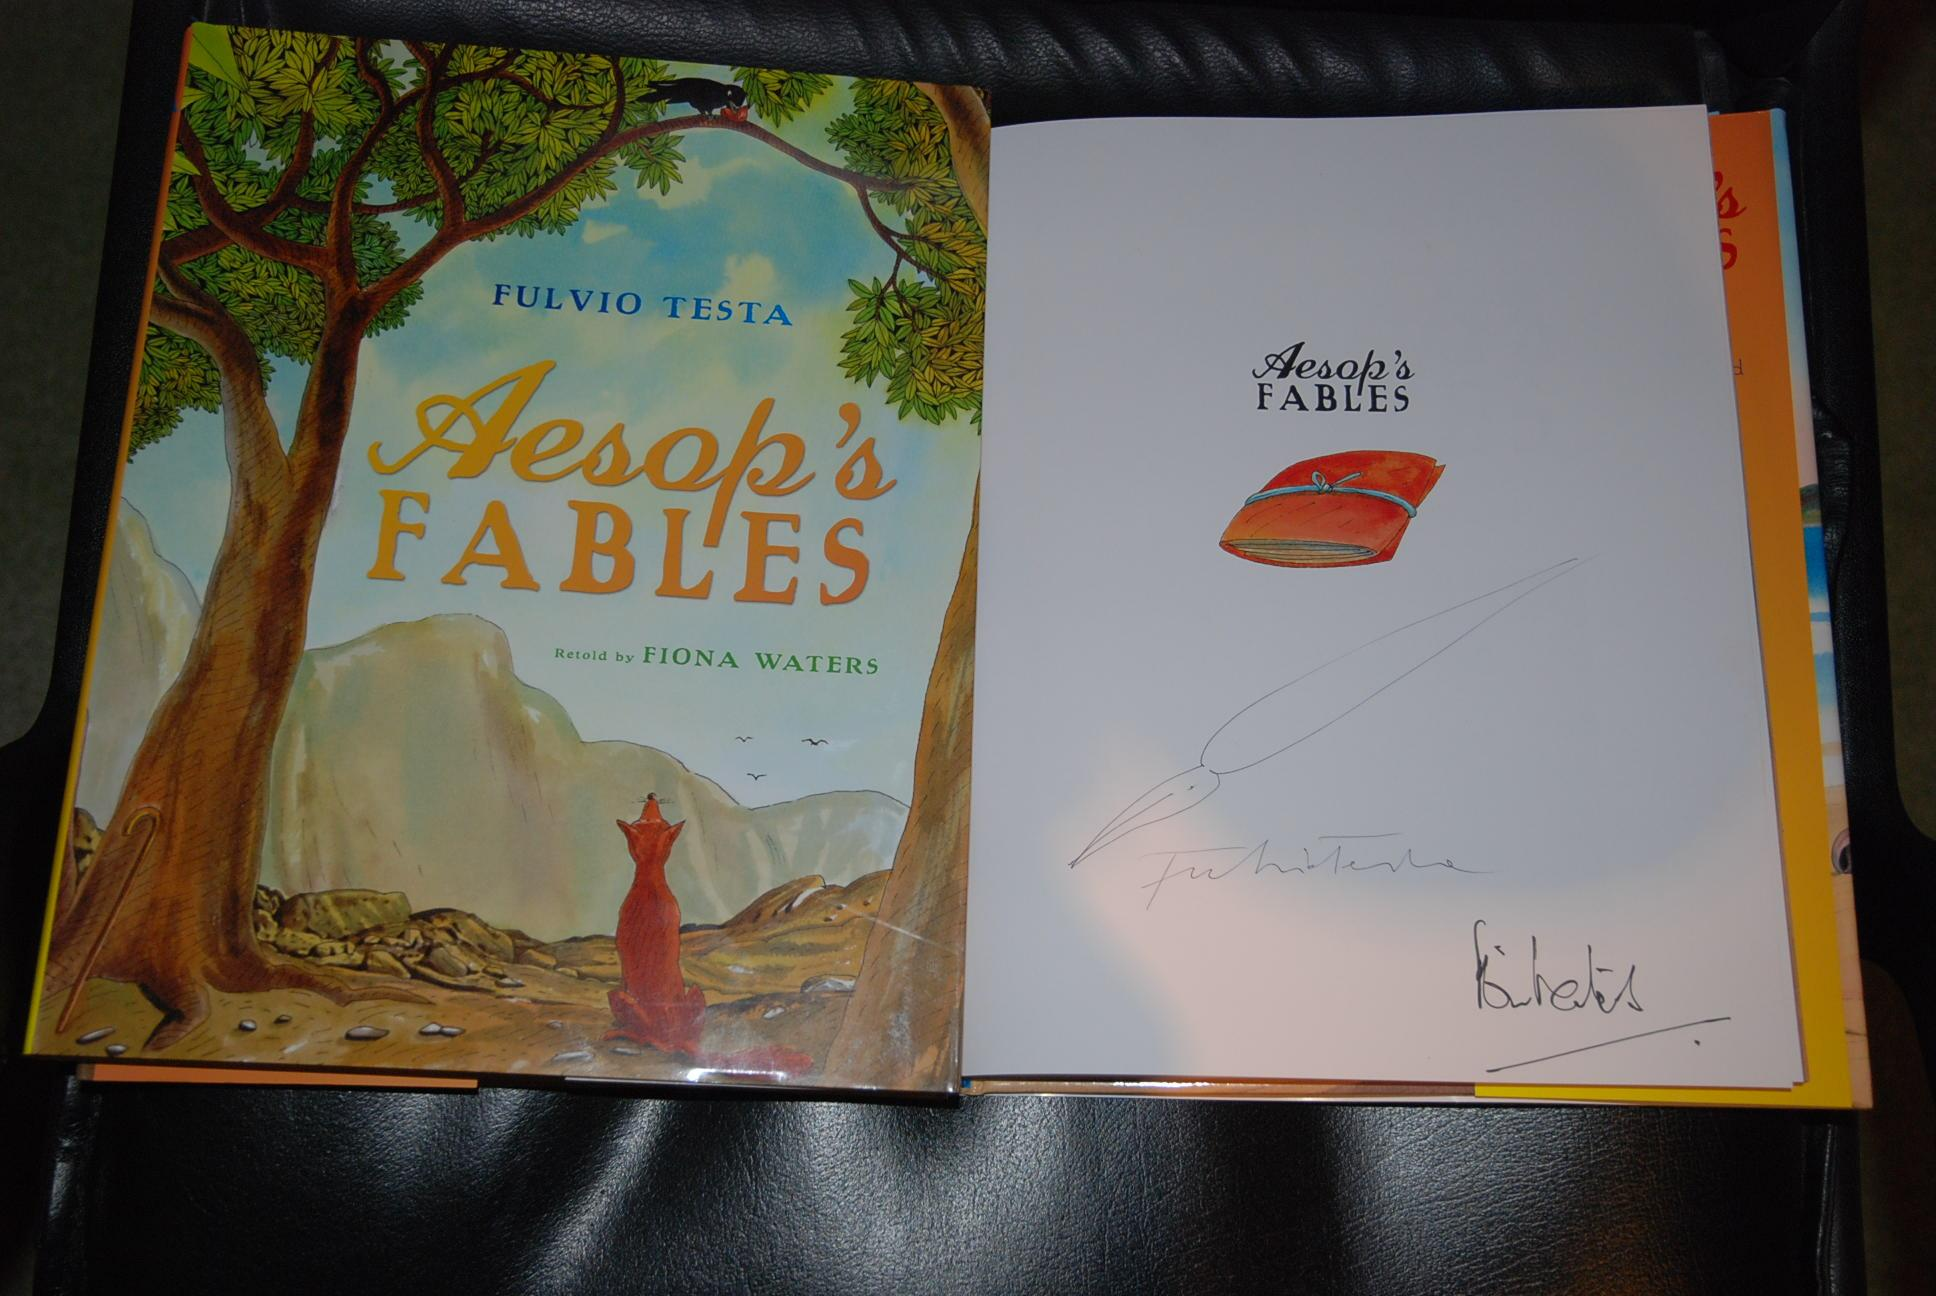 What is the authors name for fables